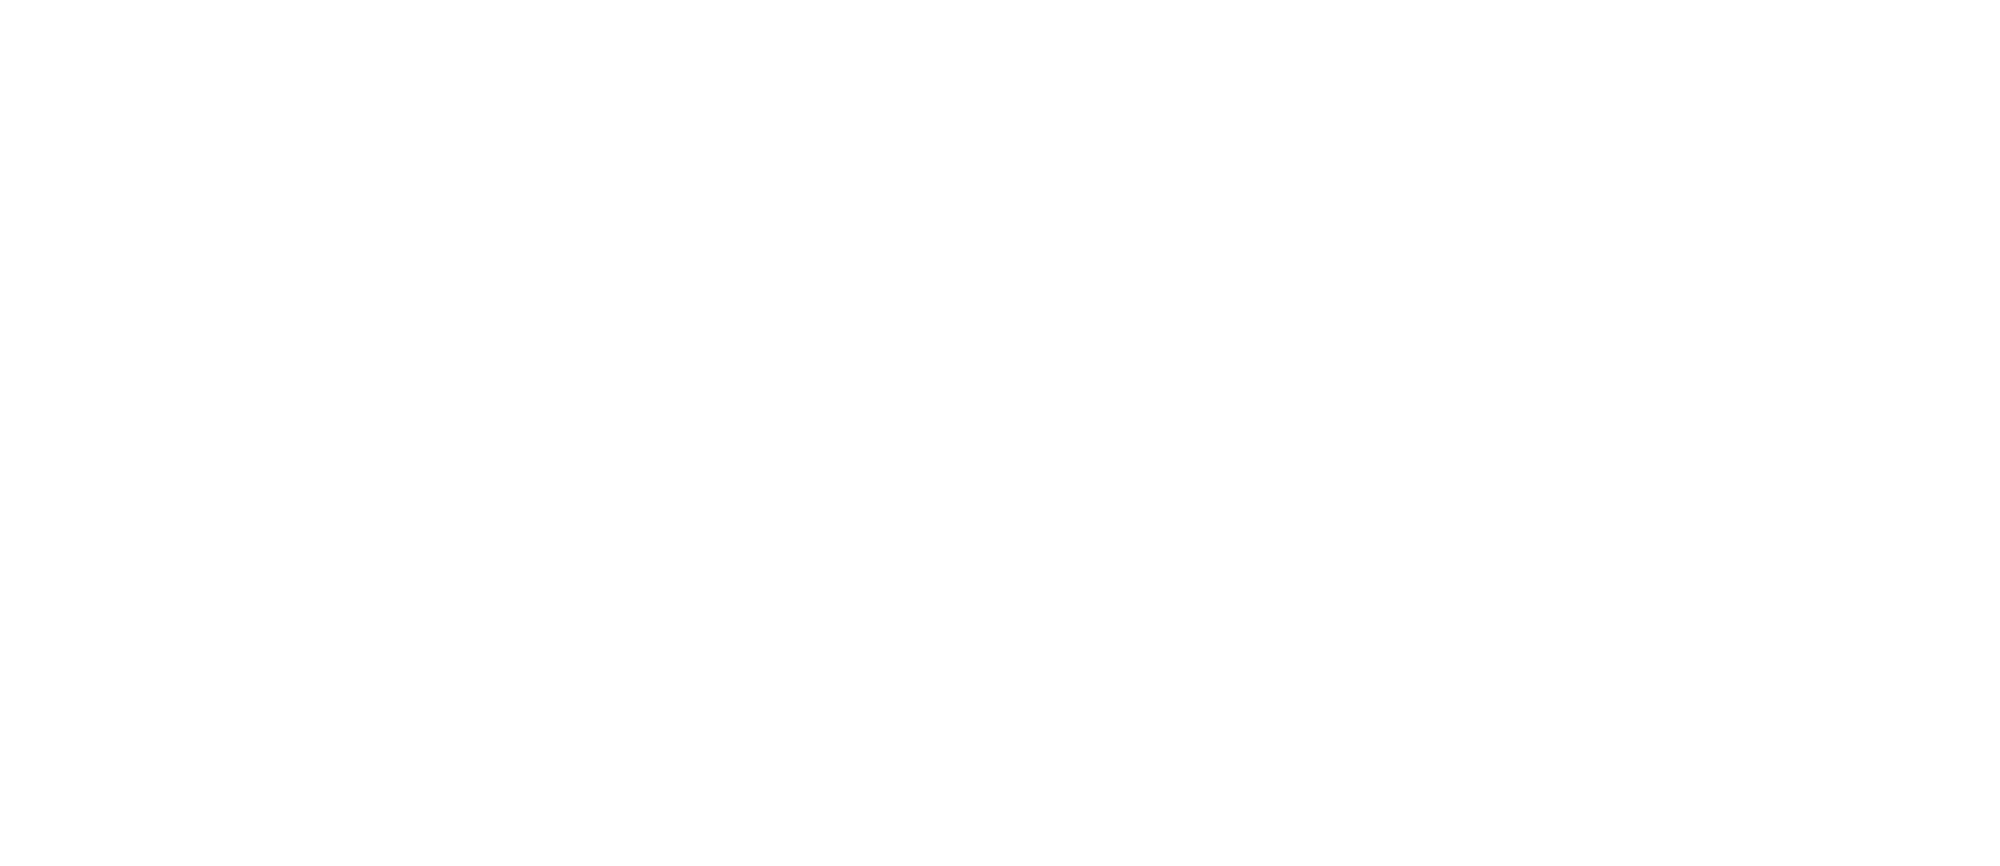 Wood Legal Group-logo-white.png